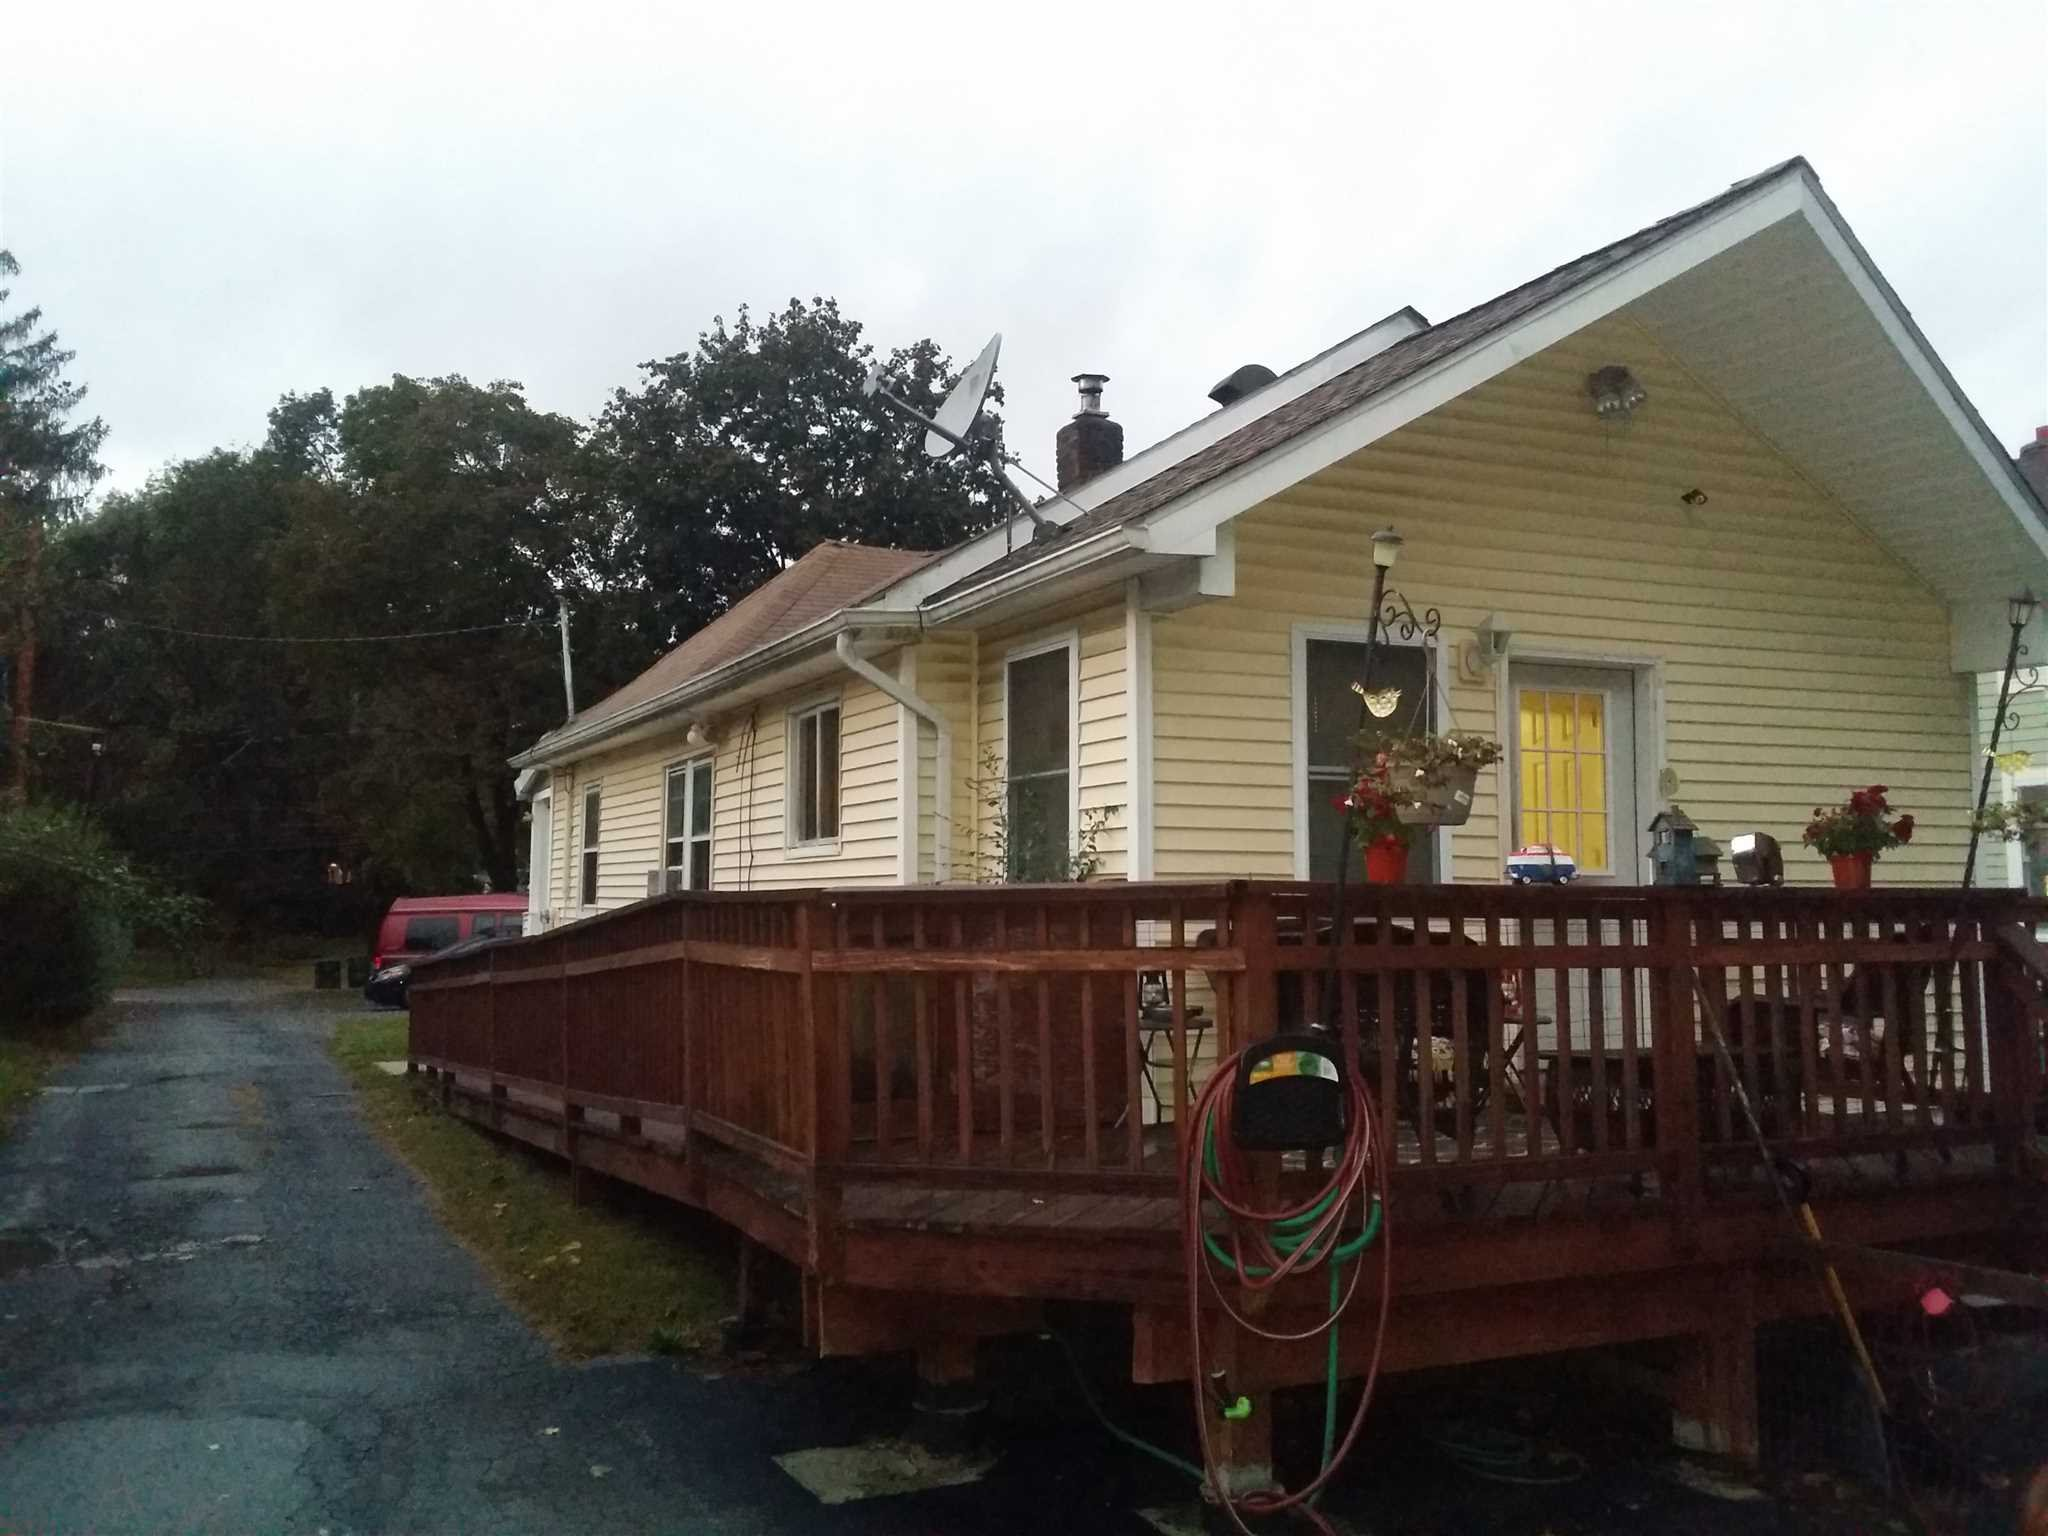 Single Family Home for Sale at 1360 ROUTE 44 1360 ROUTE 44 Pleasant Valley, New York 12569 United States